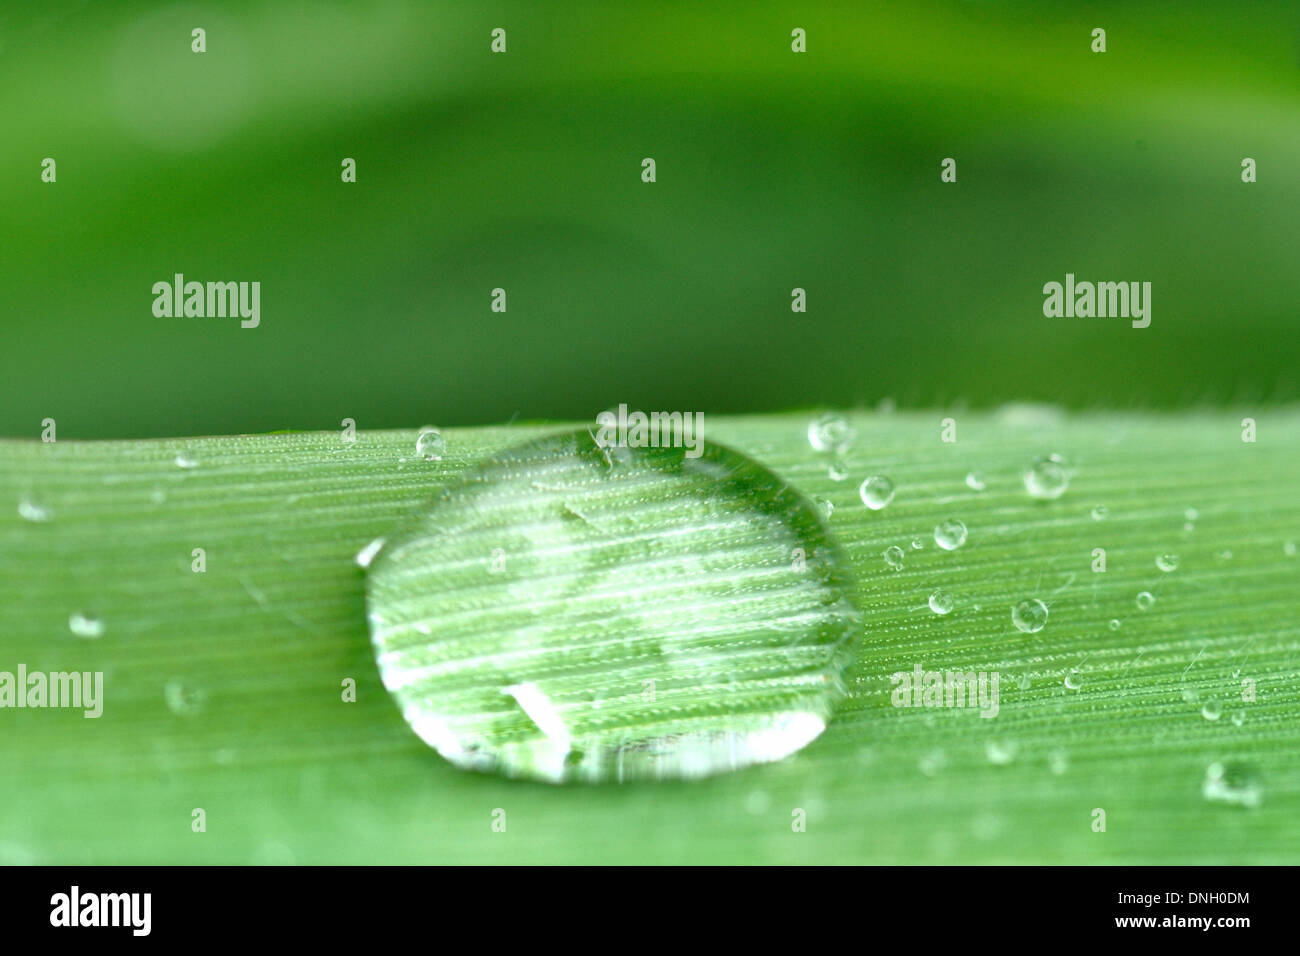 Drop water on leaf. Limpid and transparency freshness. Beauty and wellness - Stock Image